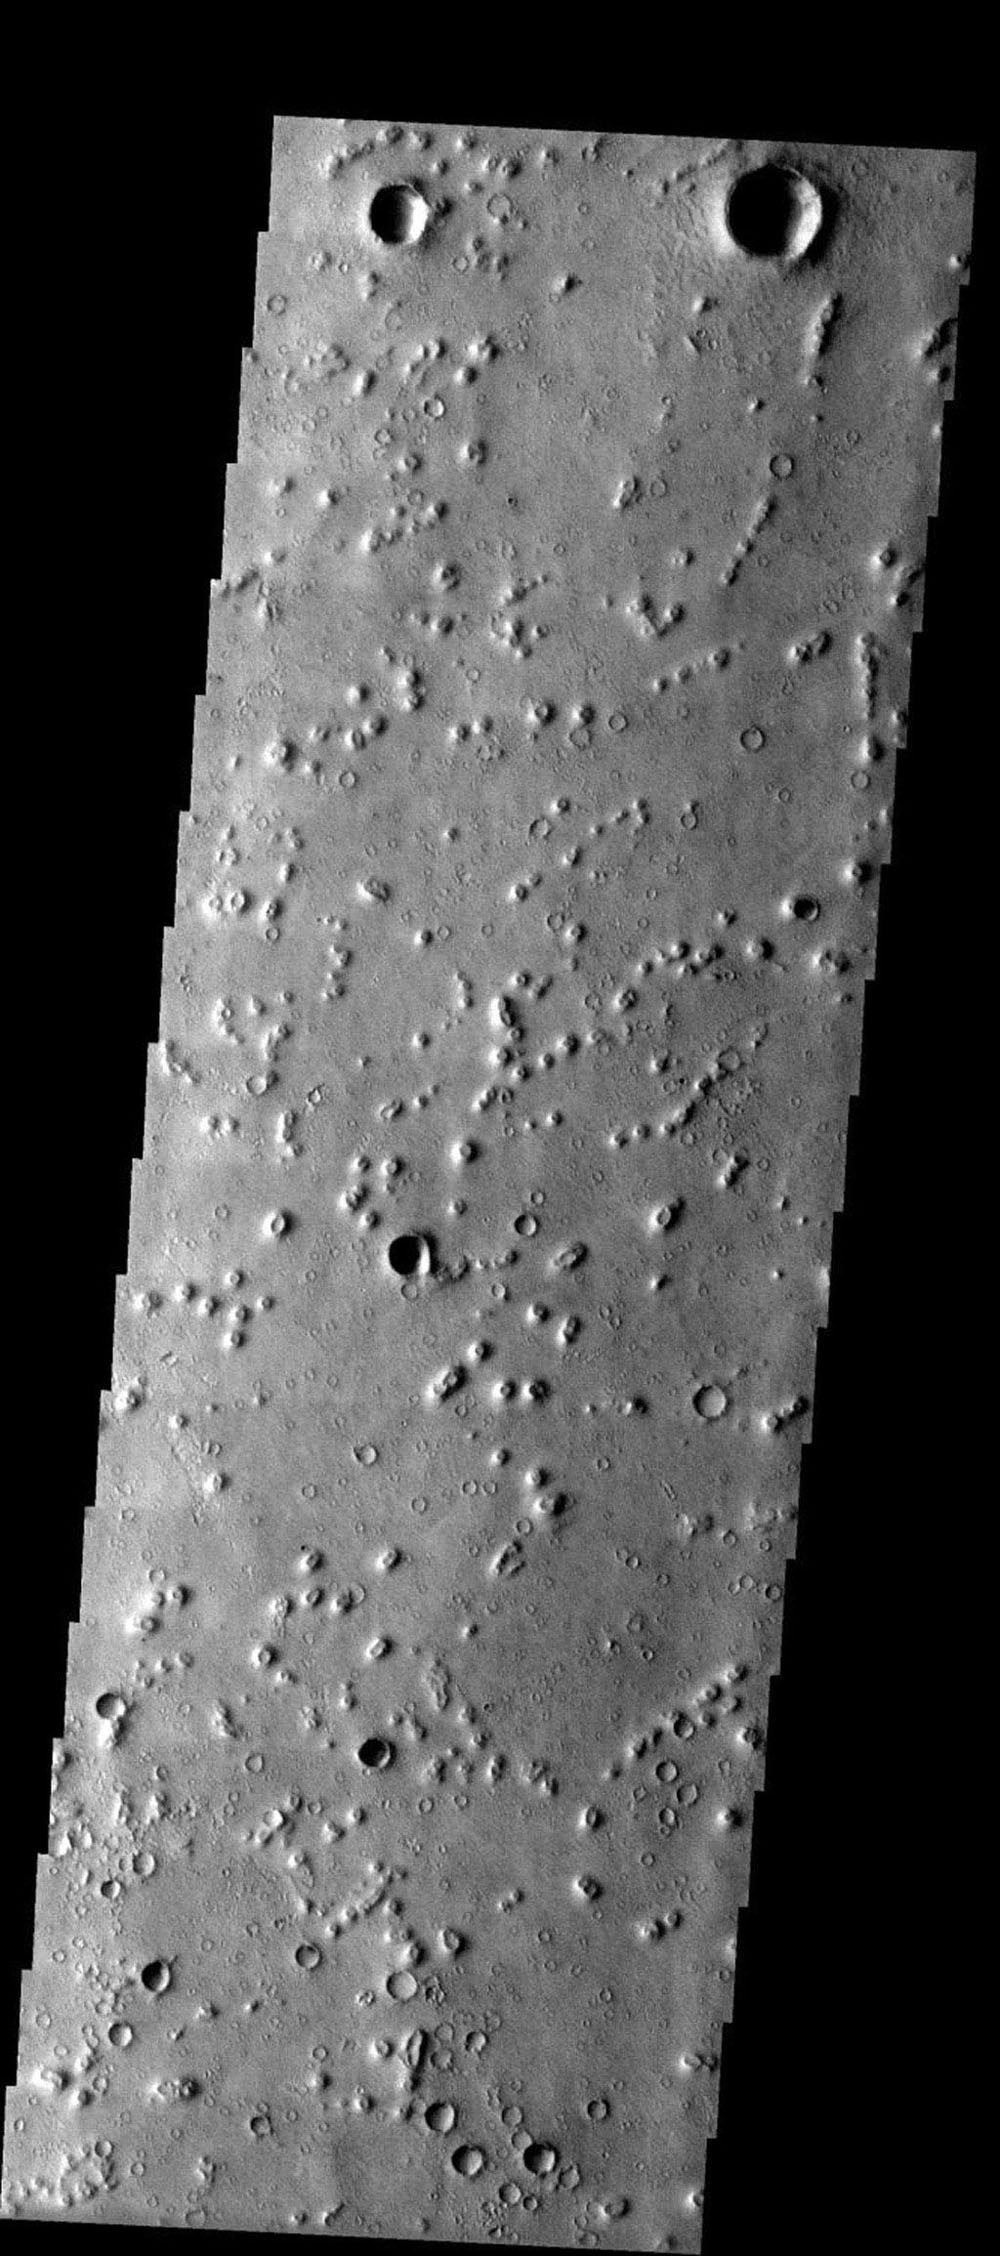 NASA's Mars Odyssey spacecraft captured this image in July 2003 of small hills/mounds in Isidis Planitia on Mars which may be of volcanic origin or alternatively eroded impact craters called pedestal craters.